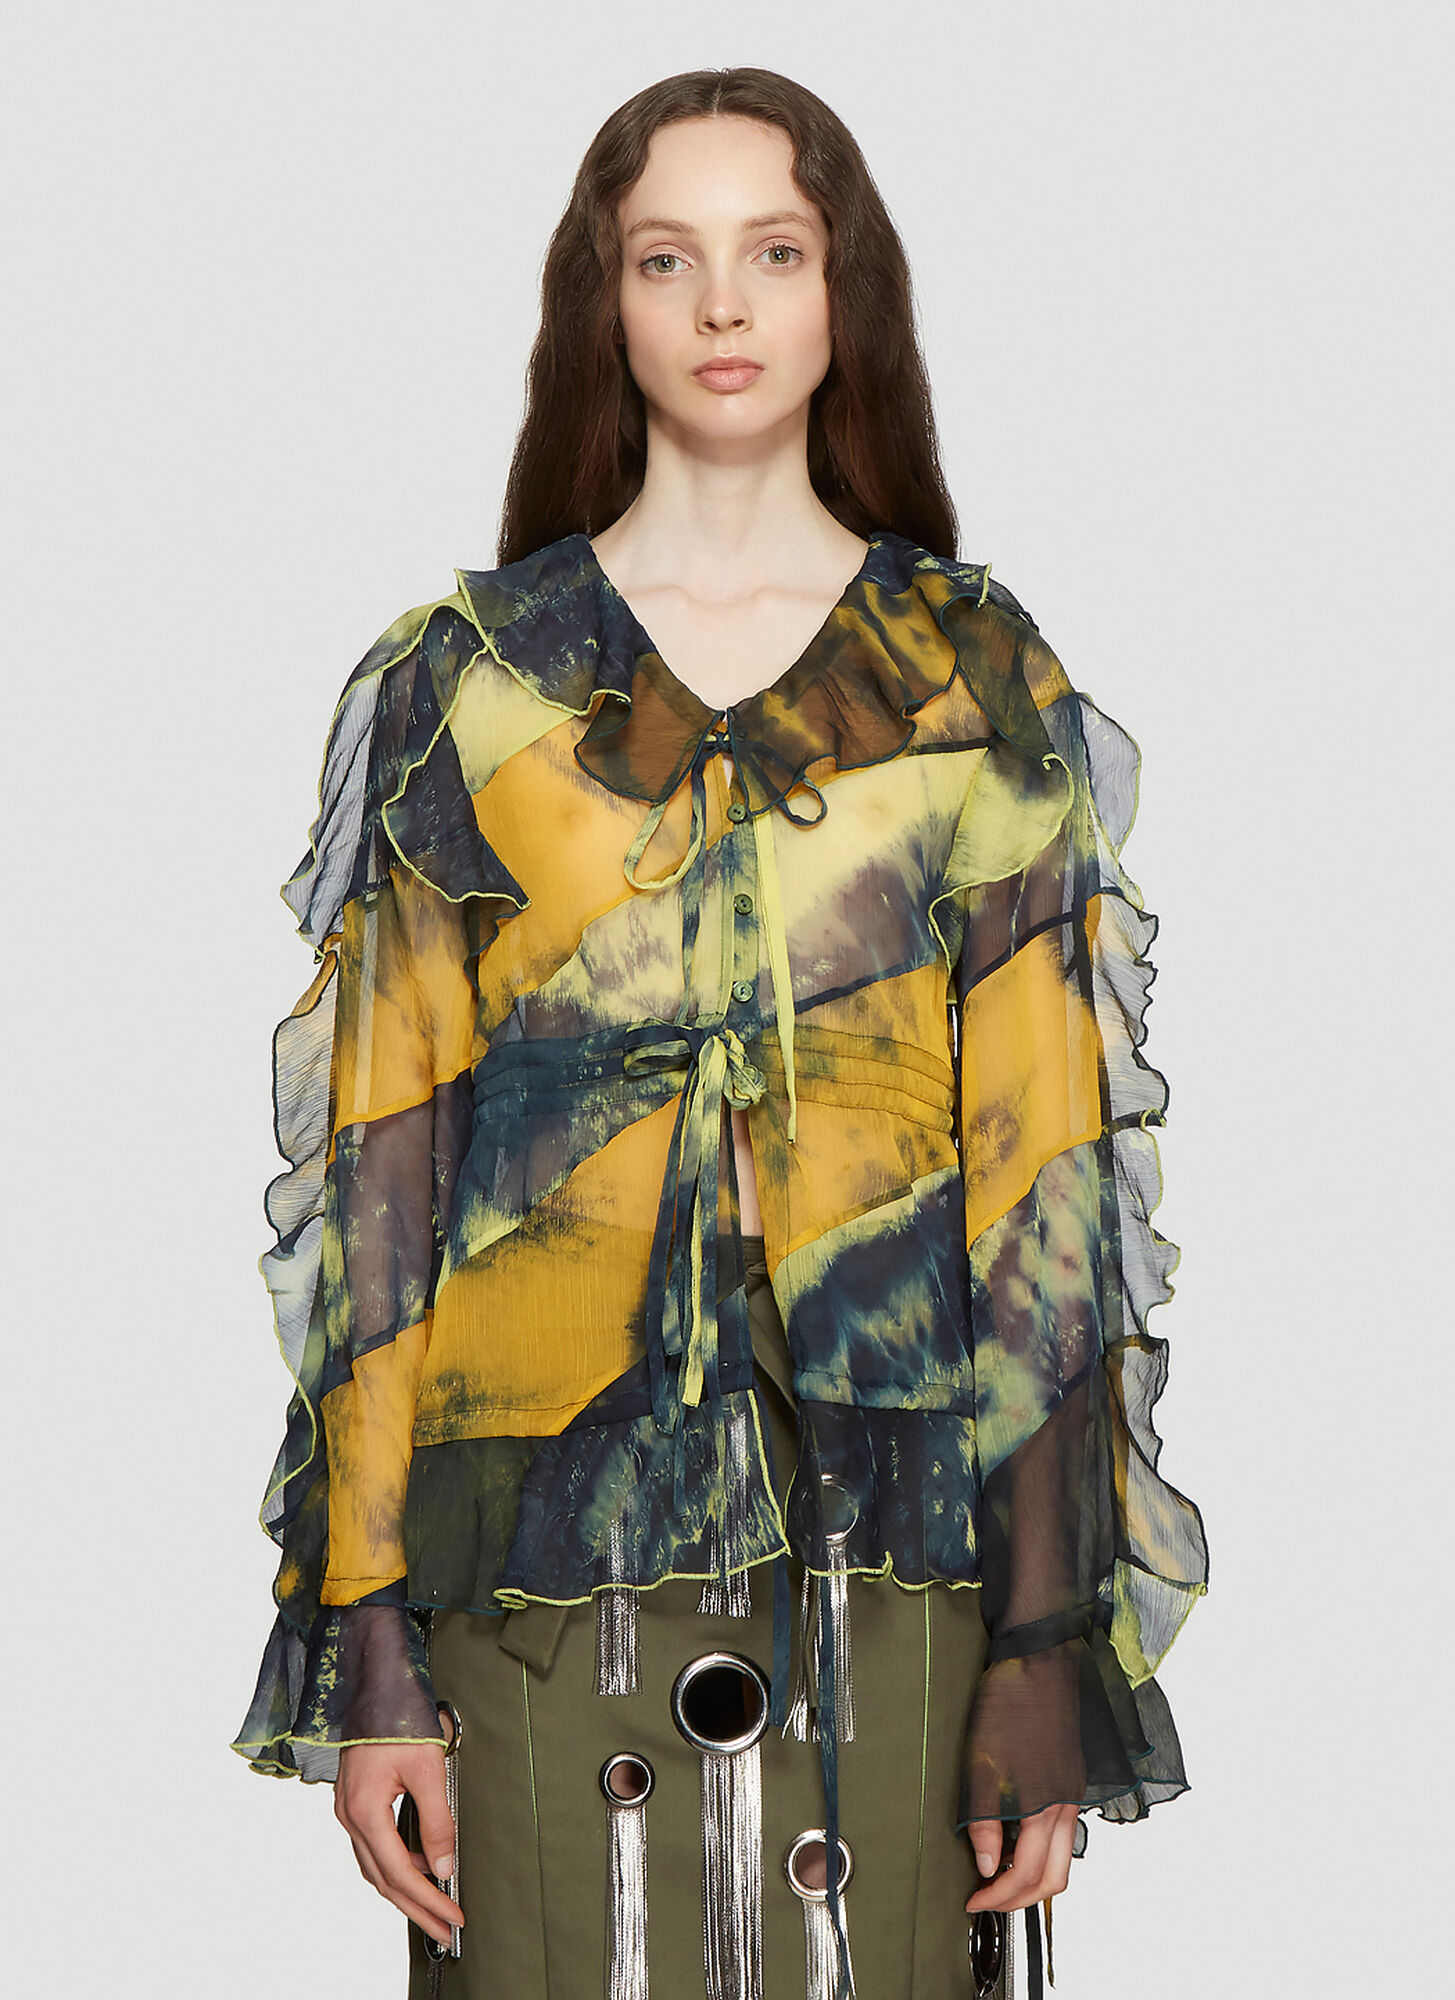 ASAI Tie-Dye Ruffle Shirt in Green